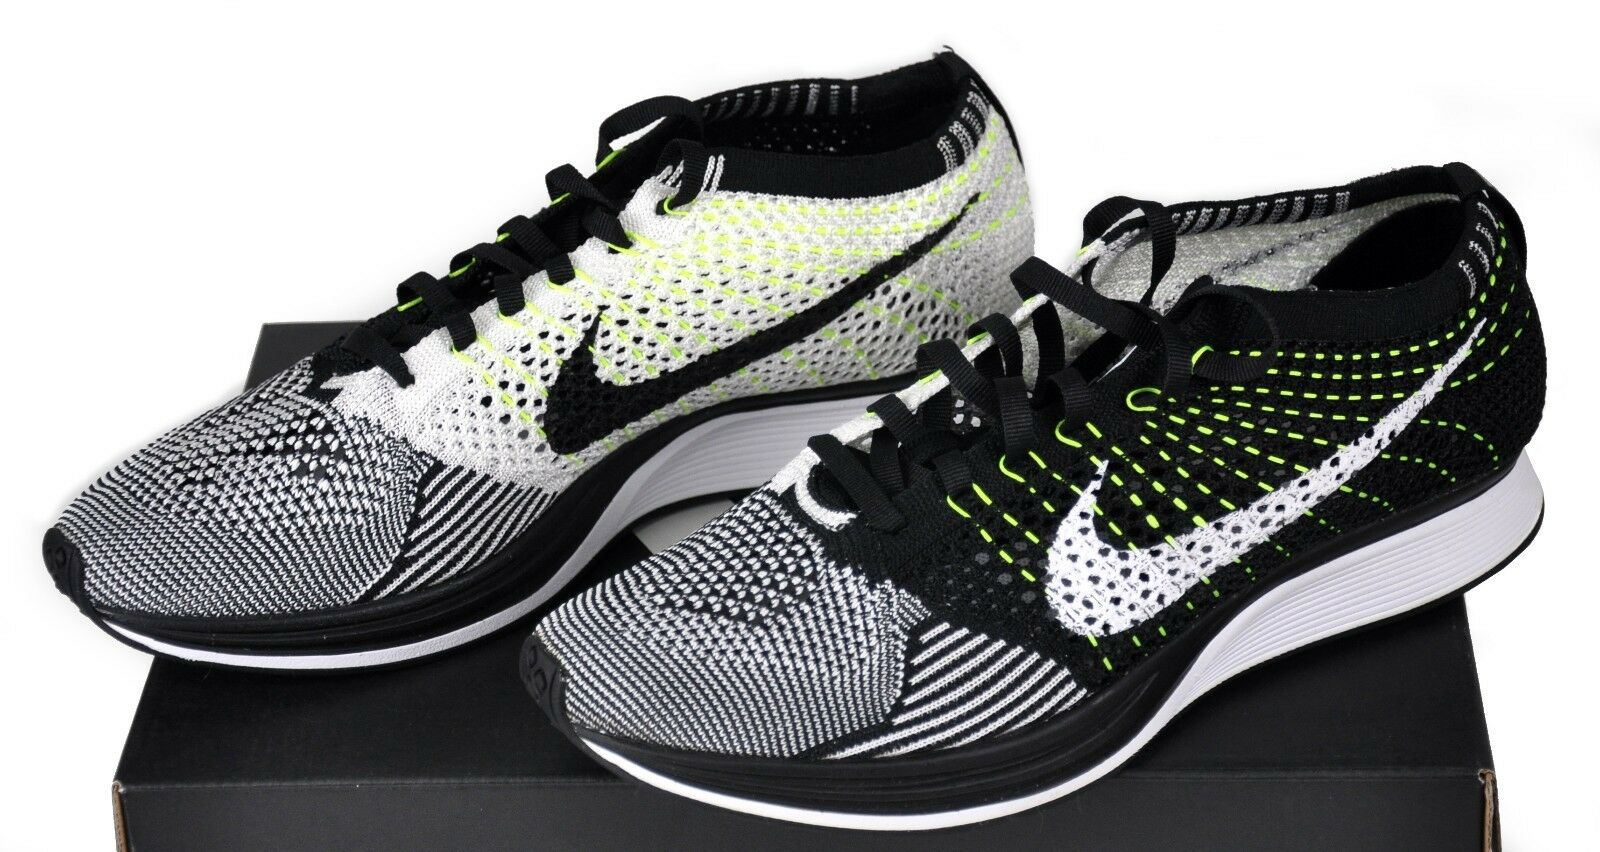 Nike Flyknit Racer Running Oreo Volt Black 526628-011 Men 6.5, 7 Womens 8, 8.5 Cheap women's shoes women's shoes